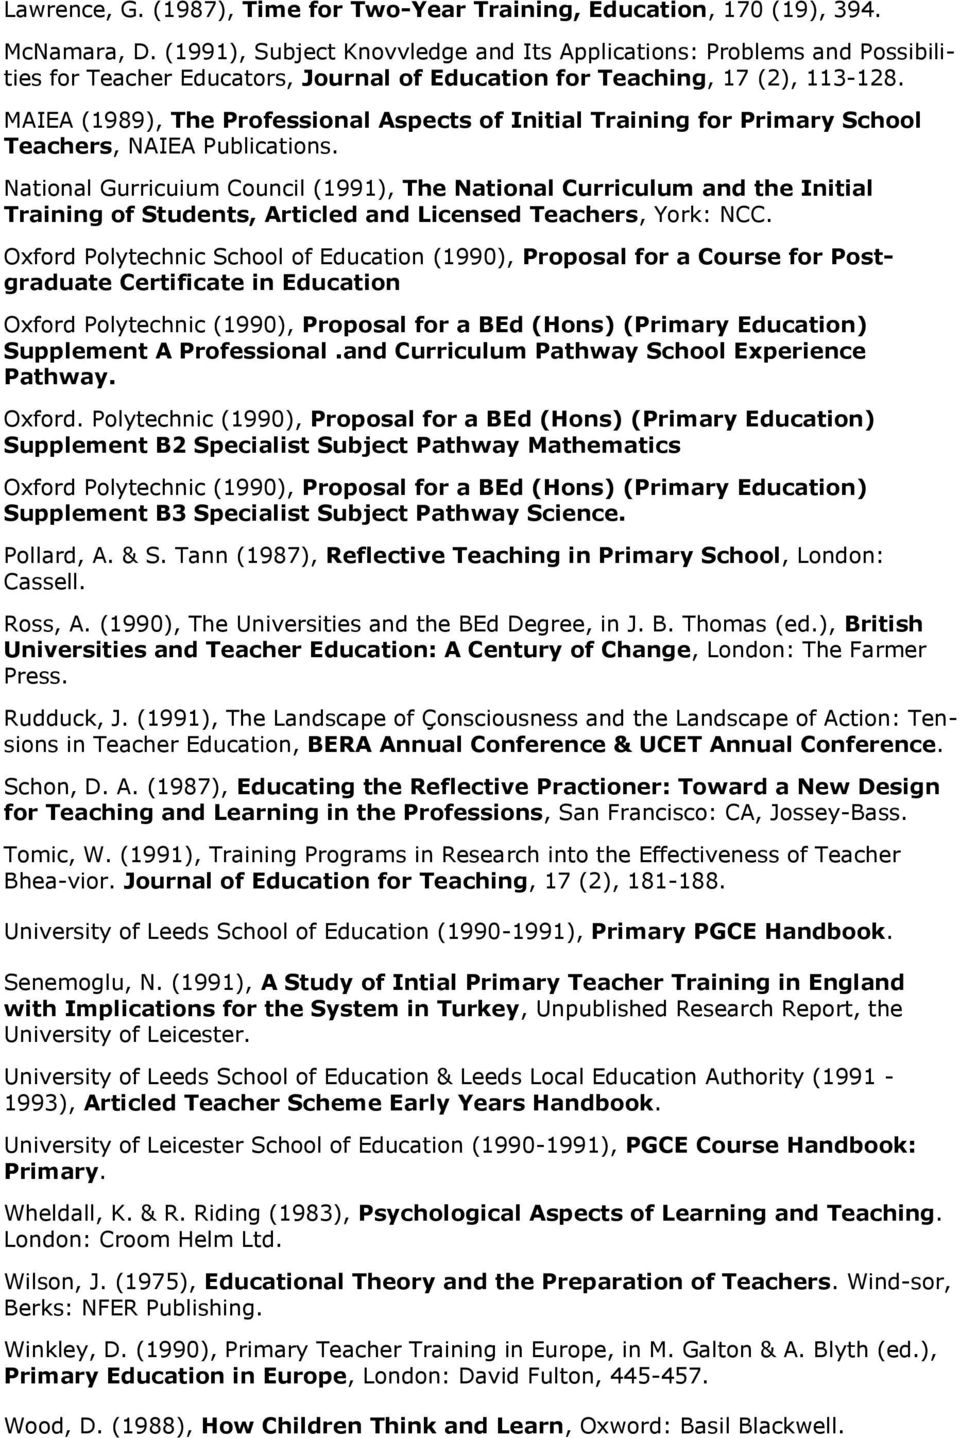 MAIEA (1989), The Professional Aspects of Initial Training for Primary School Teachers, NAIEA Publications.